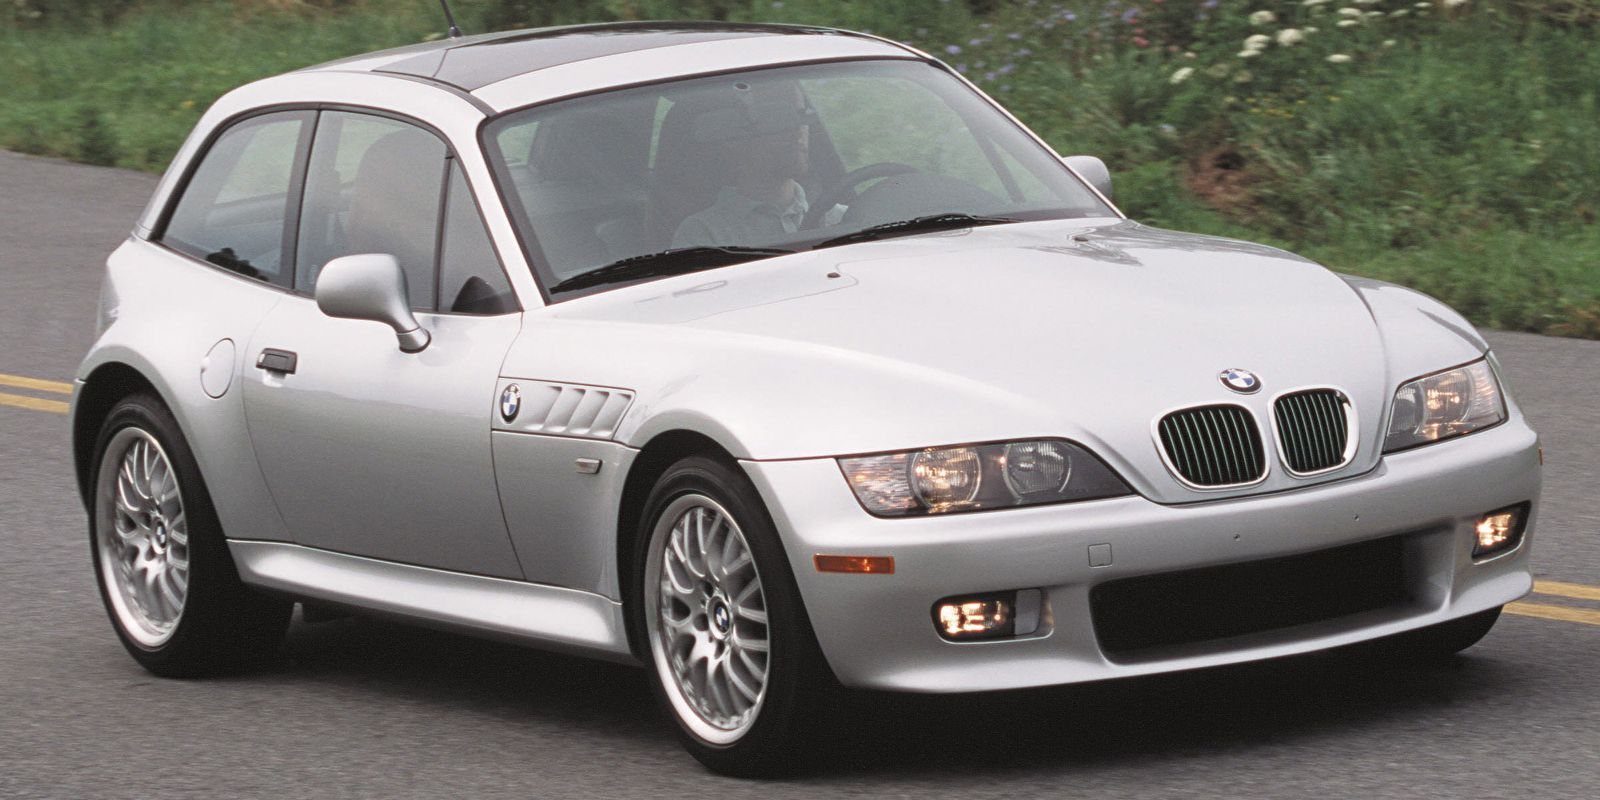 20 Sports Cars Affordable That Are Still Fun To Drive